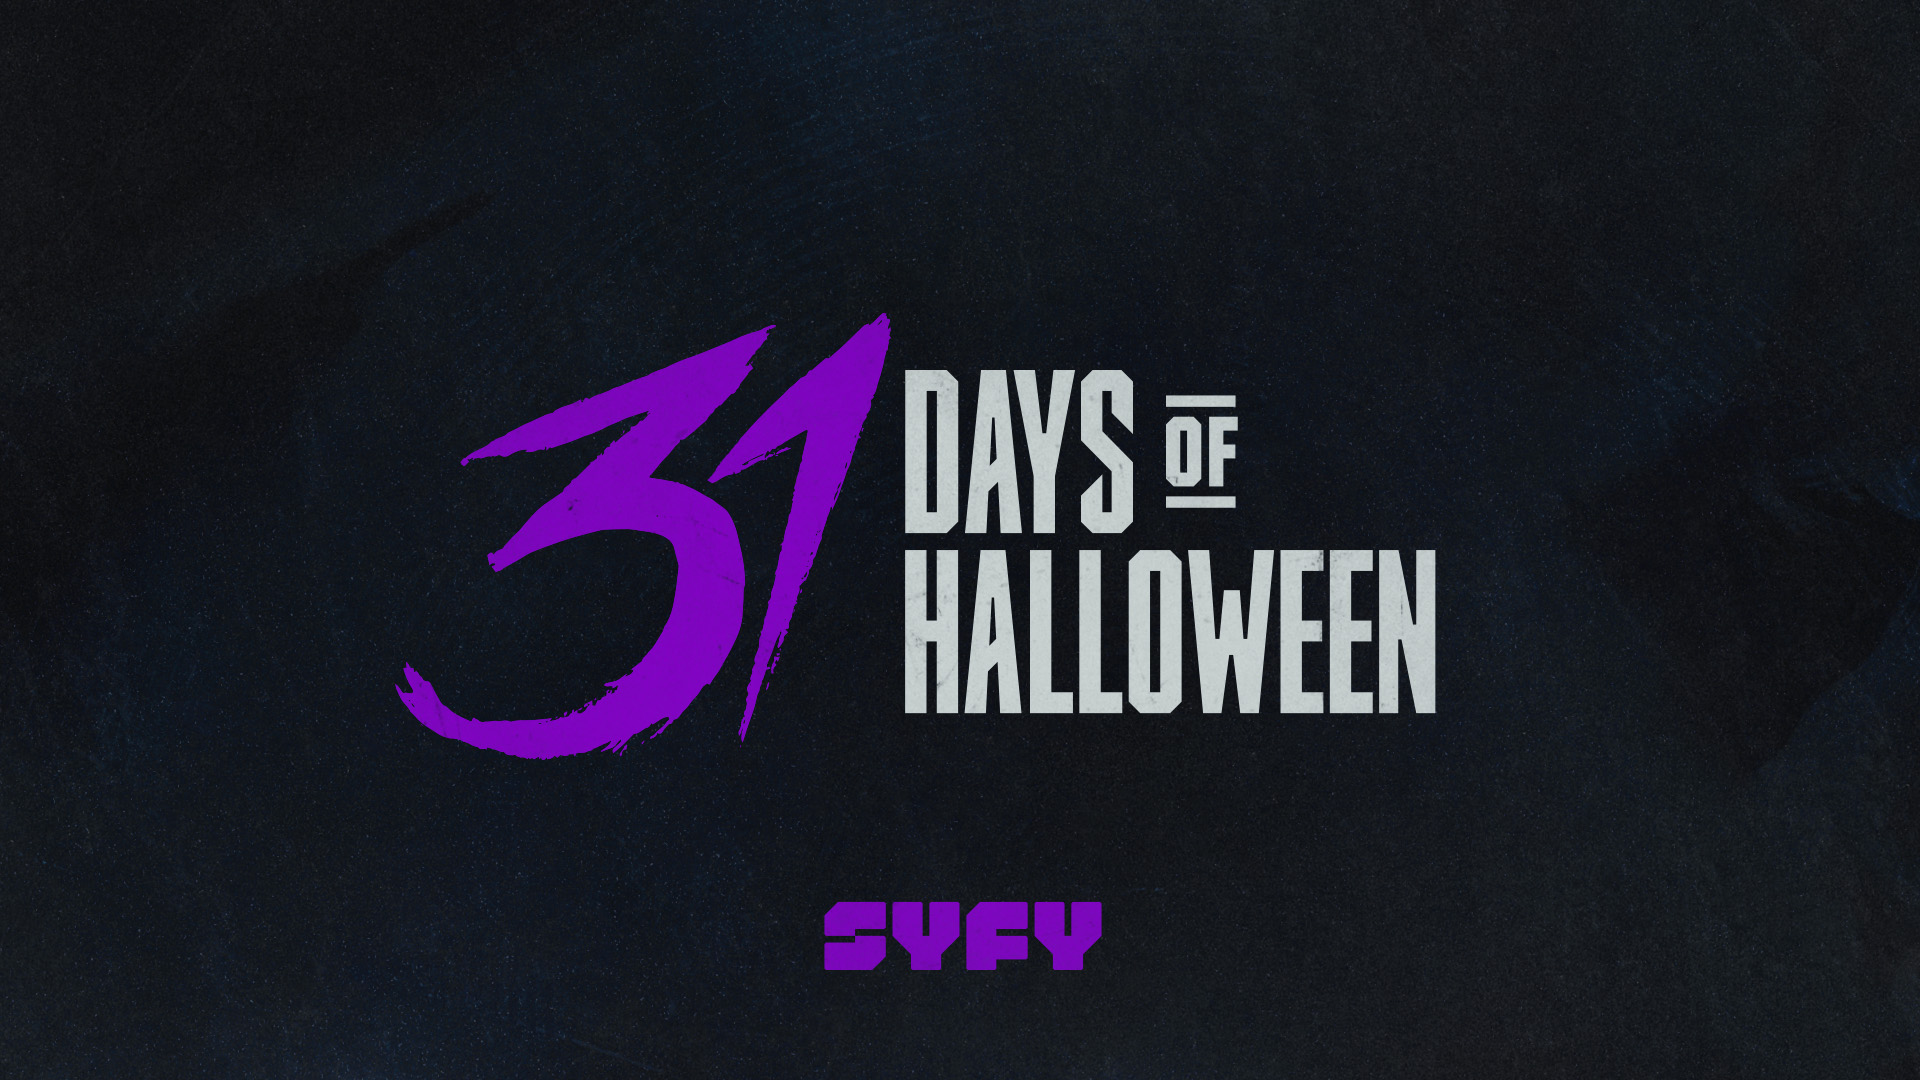 Syfy 31 Nights Of Halloween 2020 SYFY's Halloween Lineup Includes Themed Movie Marathons Throughout